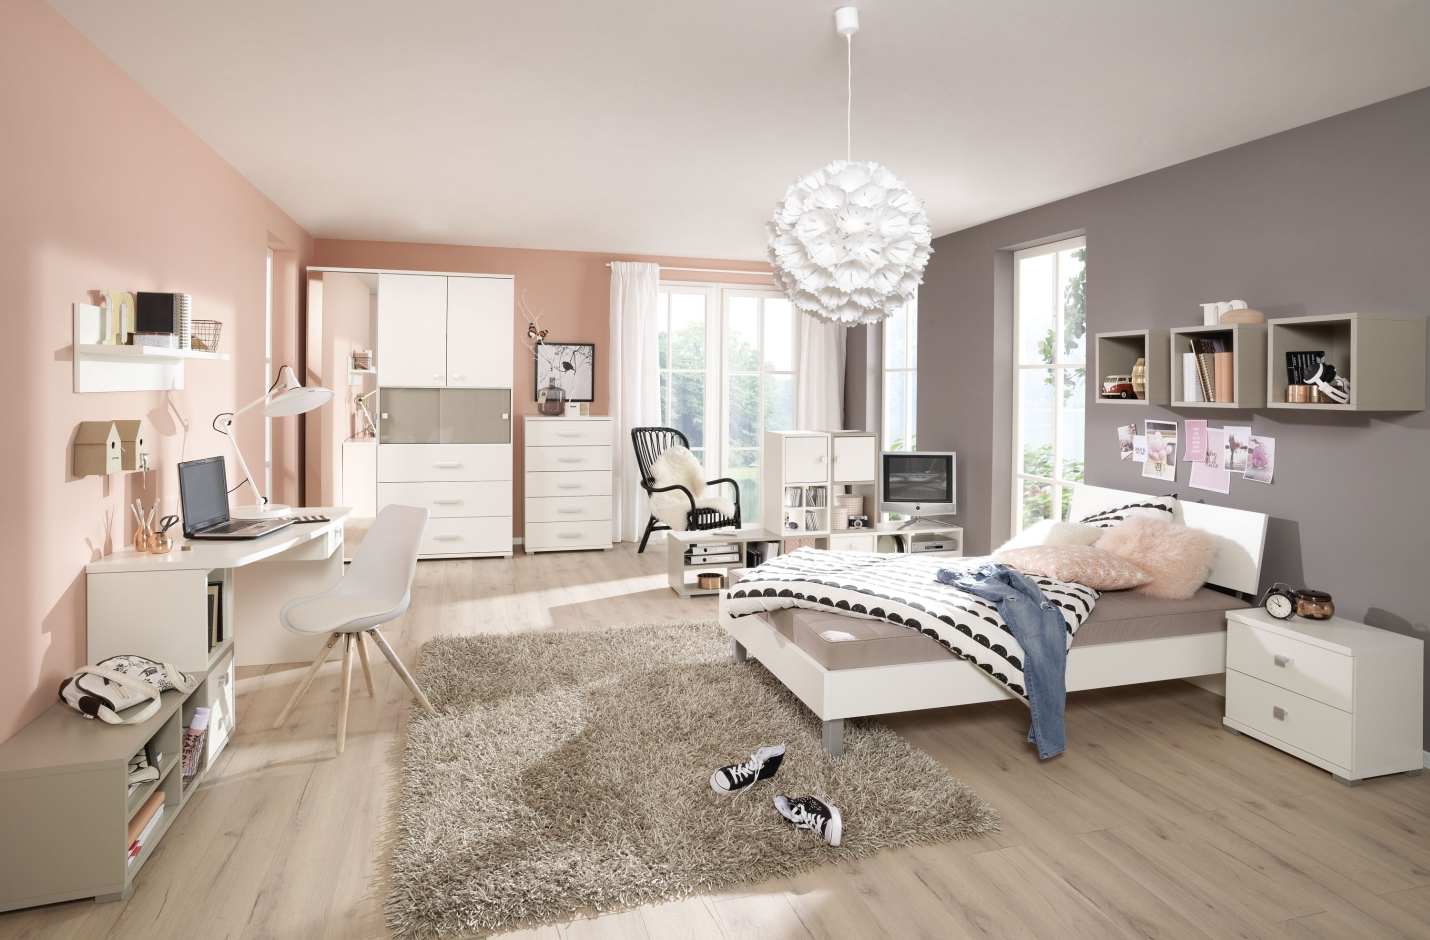 welle m bel jugend roomx teenio one chill. Black Bedroom Furniture Sets. Home Design Ideas